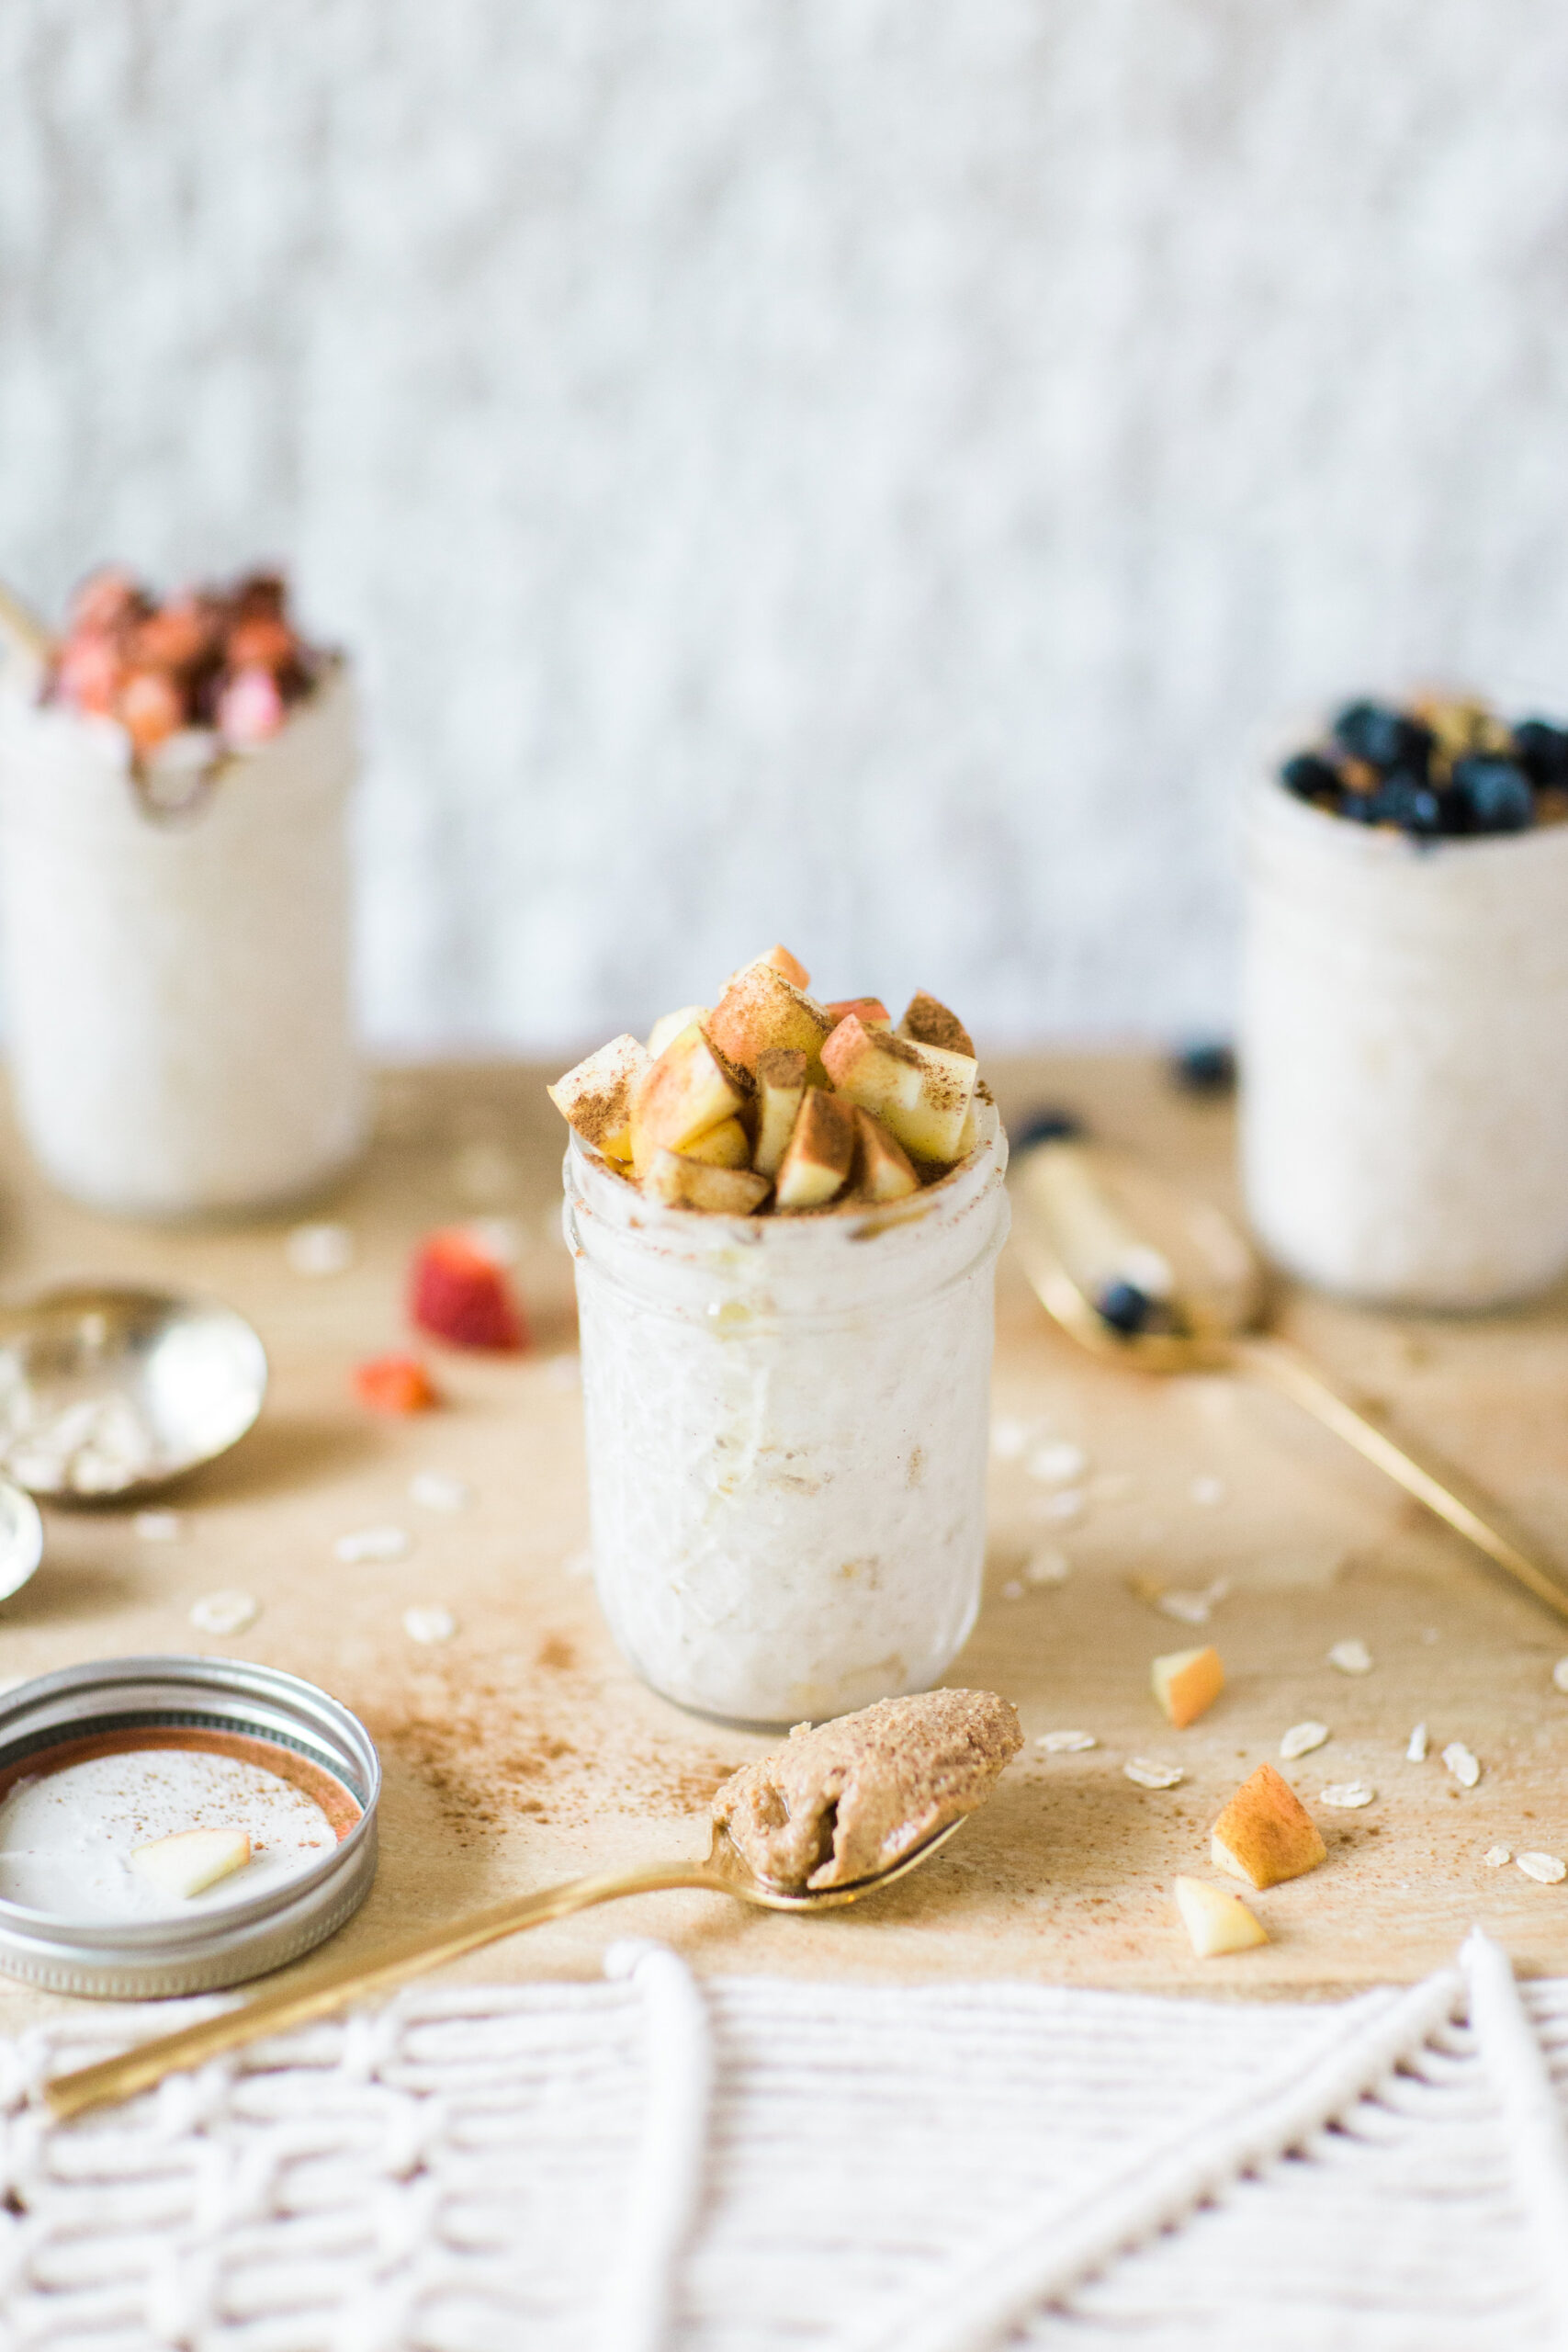 How to Make Easy Overnight Oats (3 Ways!)